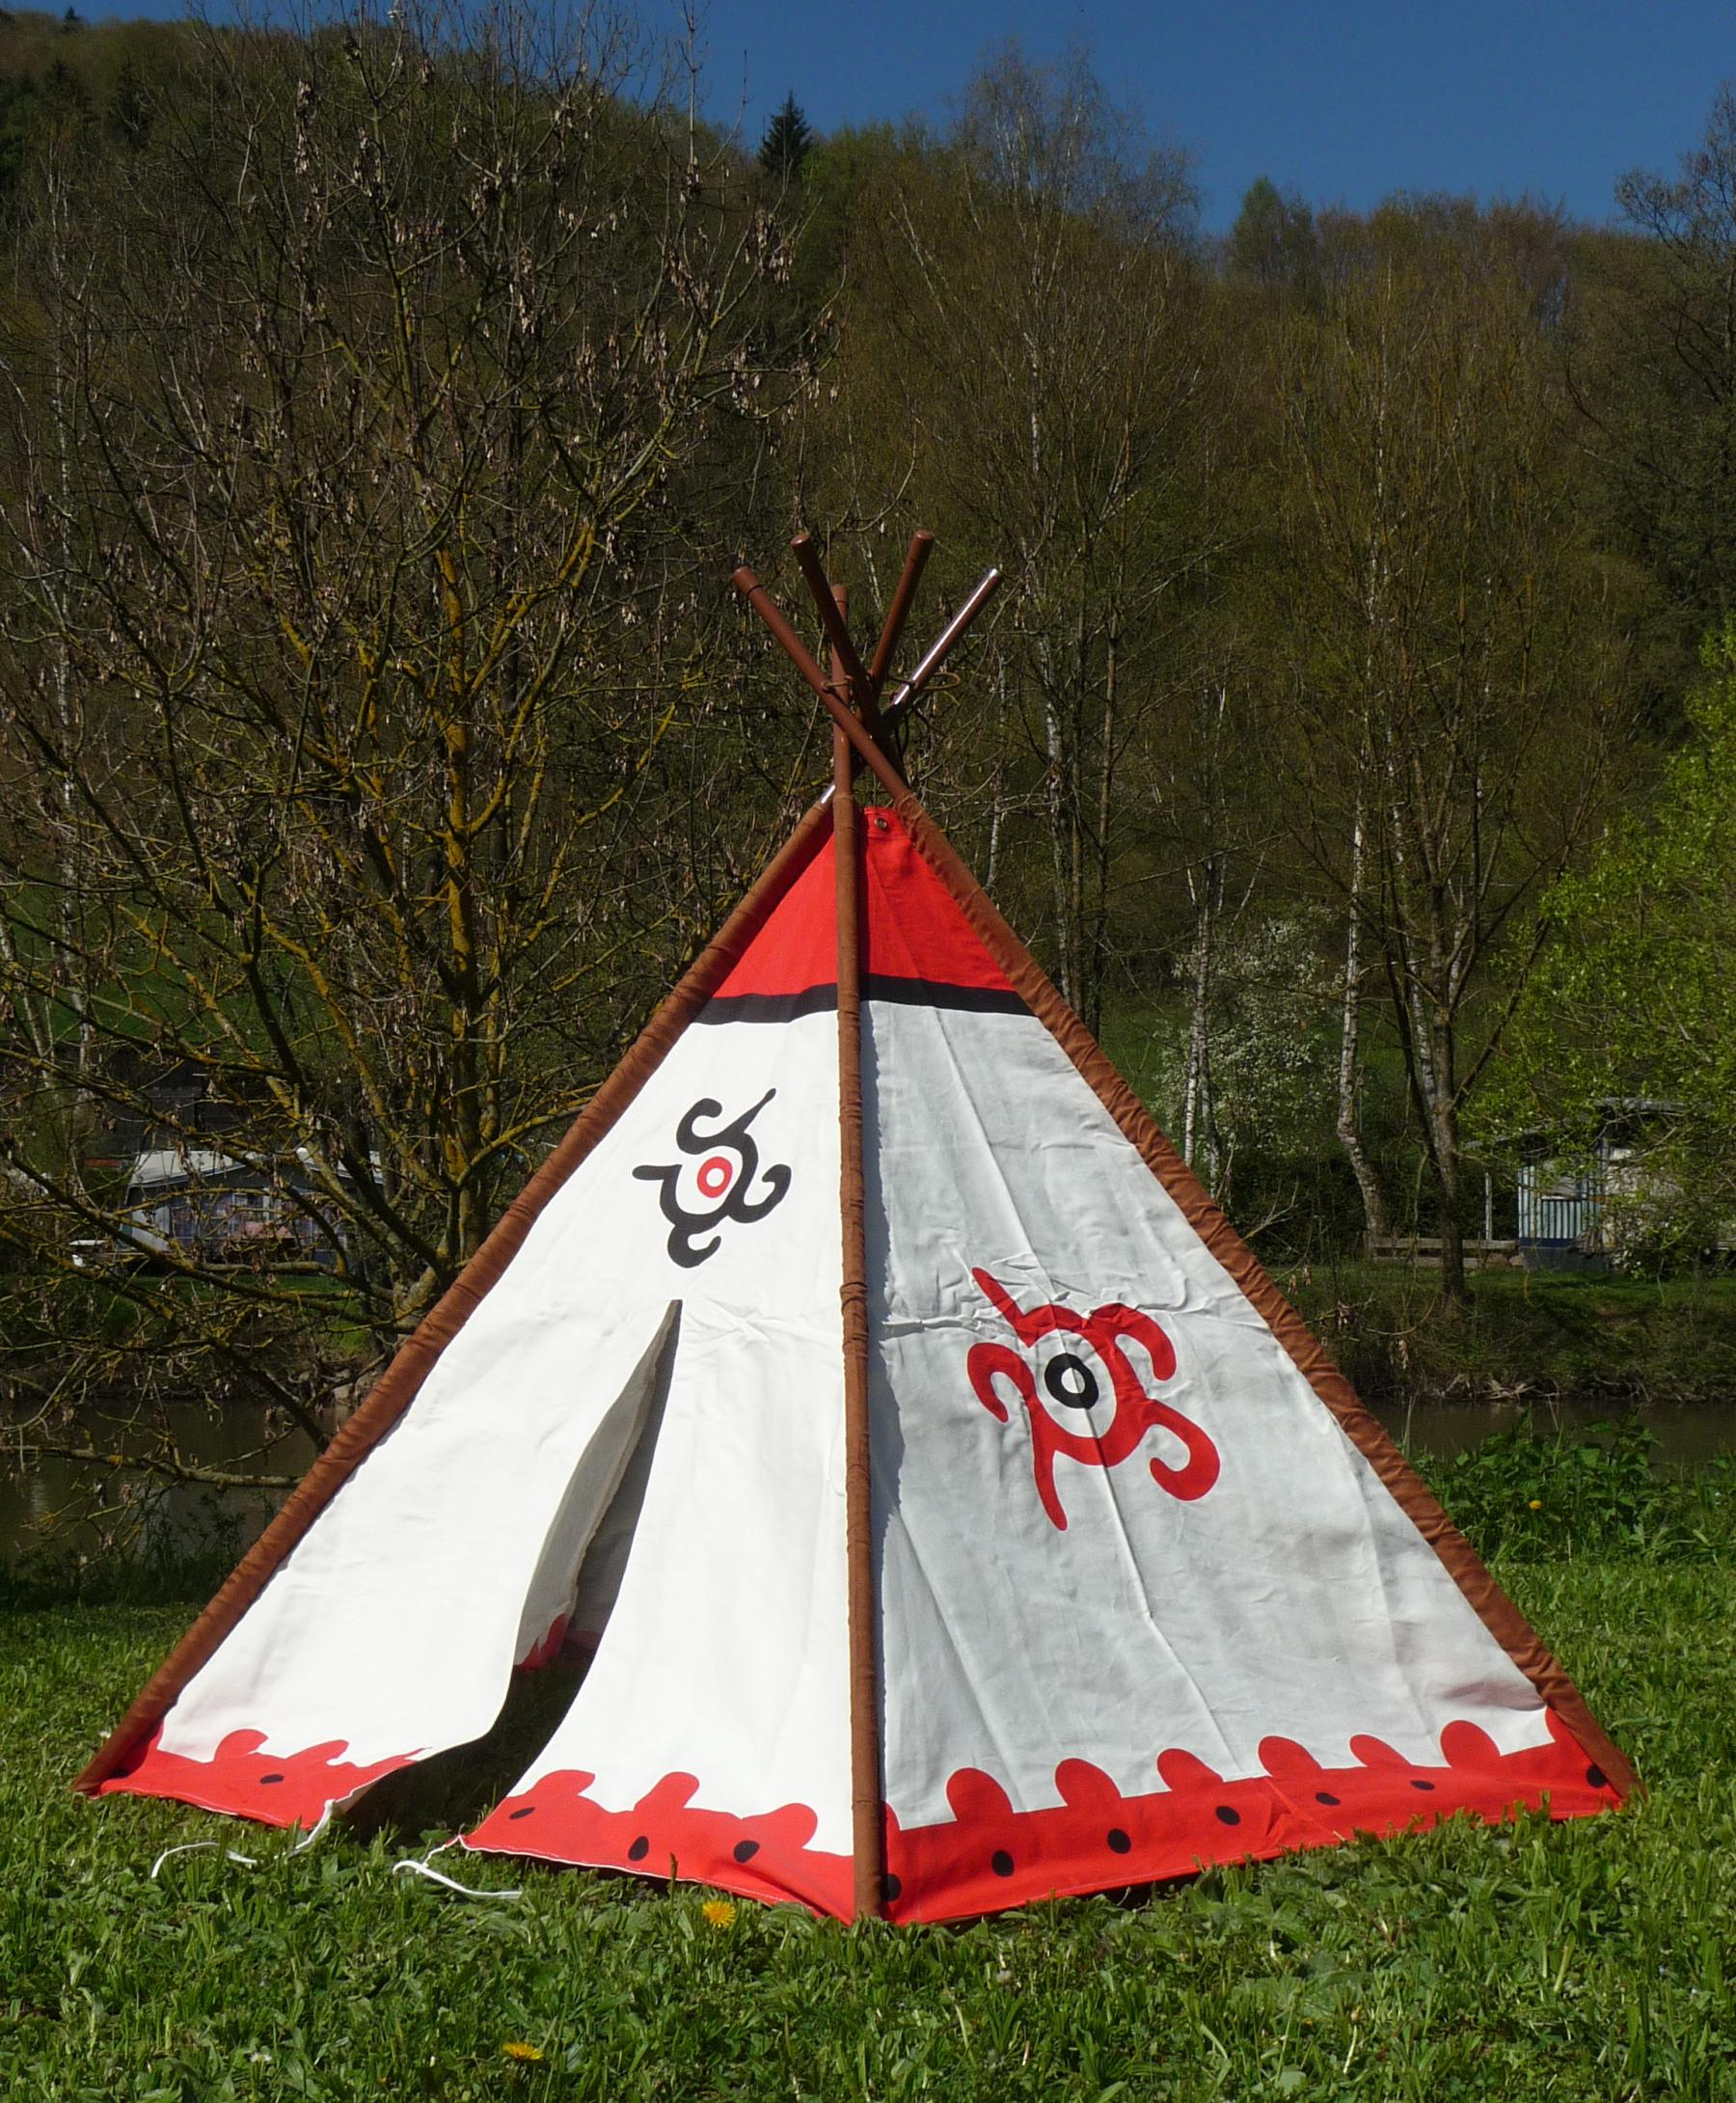 tipi wigwam indianerzelt mit aluminium stangen 183 x 137cm top qualit t kaufen bei wim shop. Black Bedroom Furniture Sets. Home Design Ideas